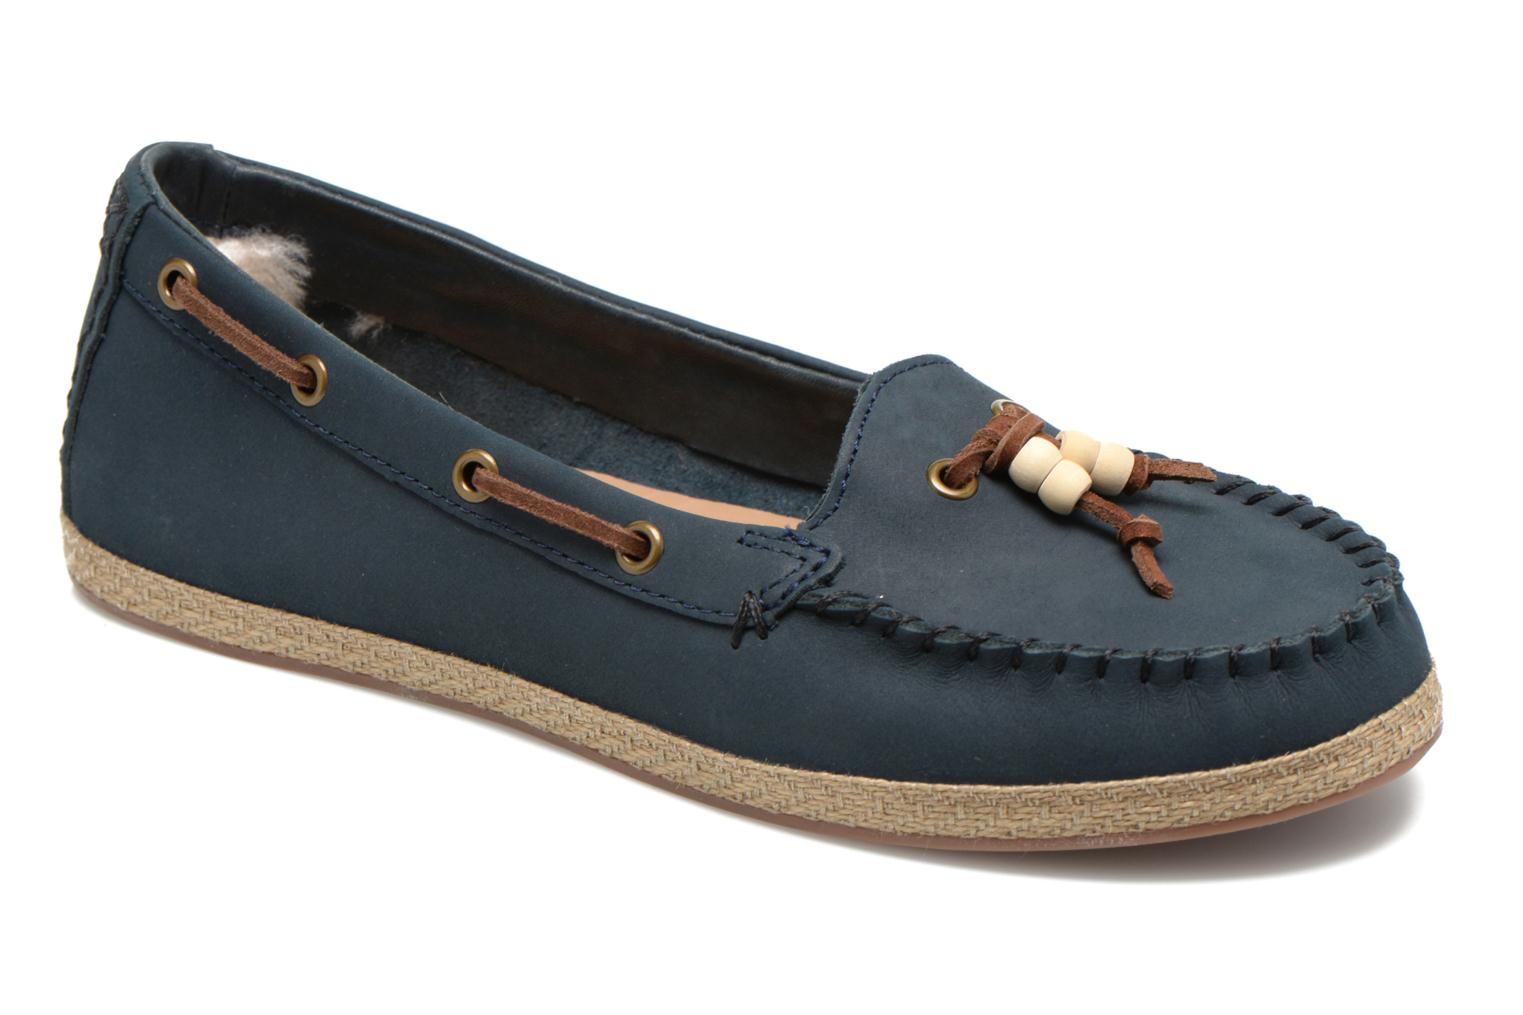 5b5ca217782 Details about UGG SUZETTE CHIVON NUBUCK LEATHER SLIP ON MOCCASINS SHOES -  SIZE 5 - NAVY BLUE